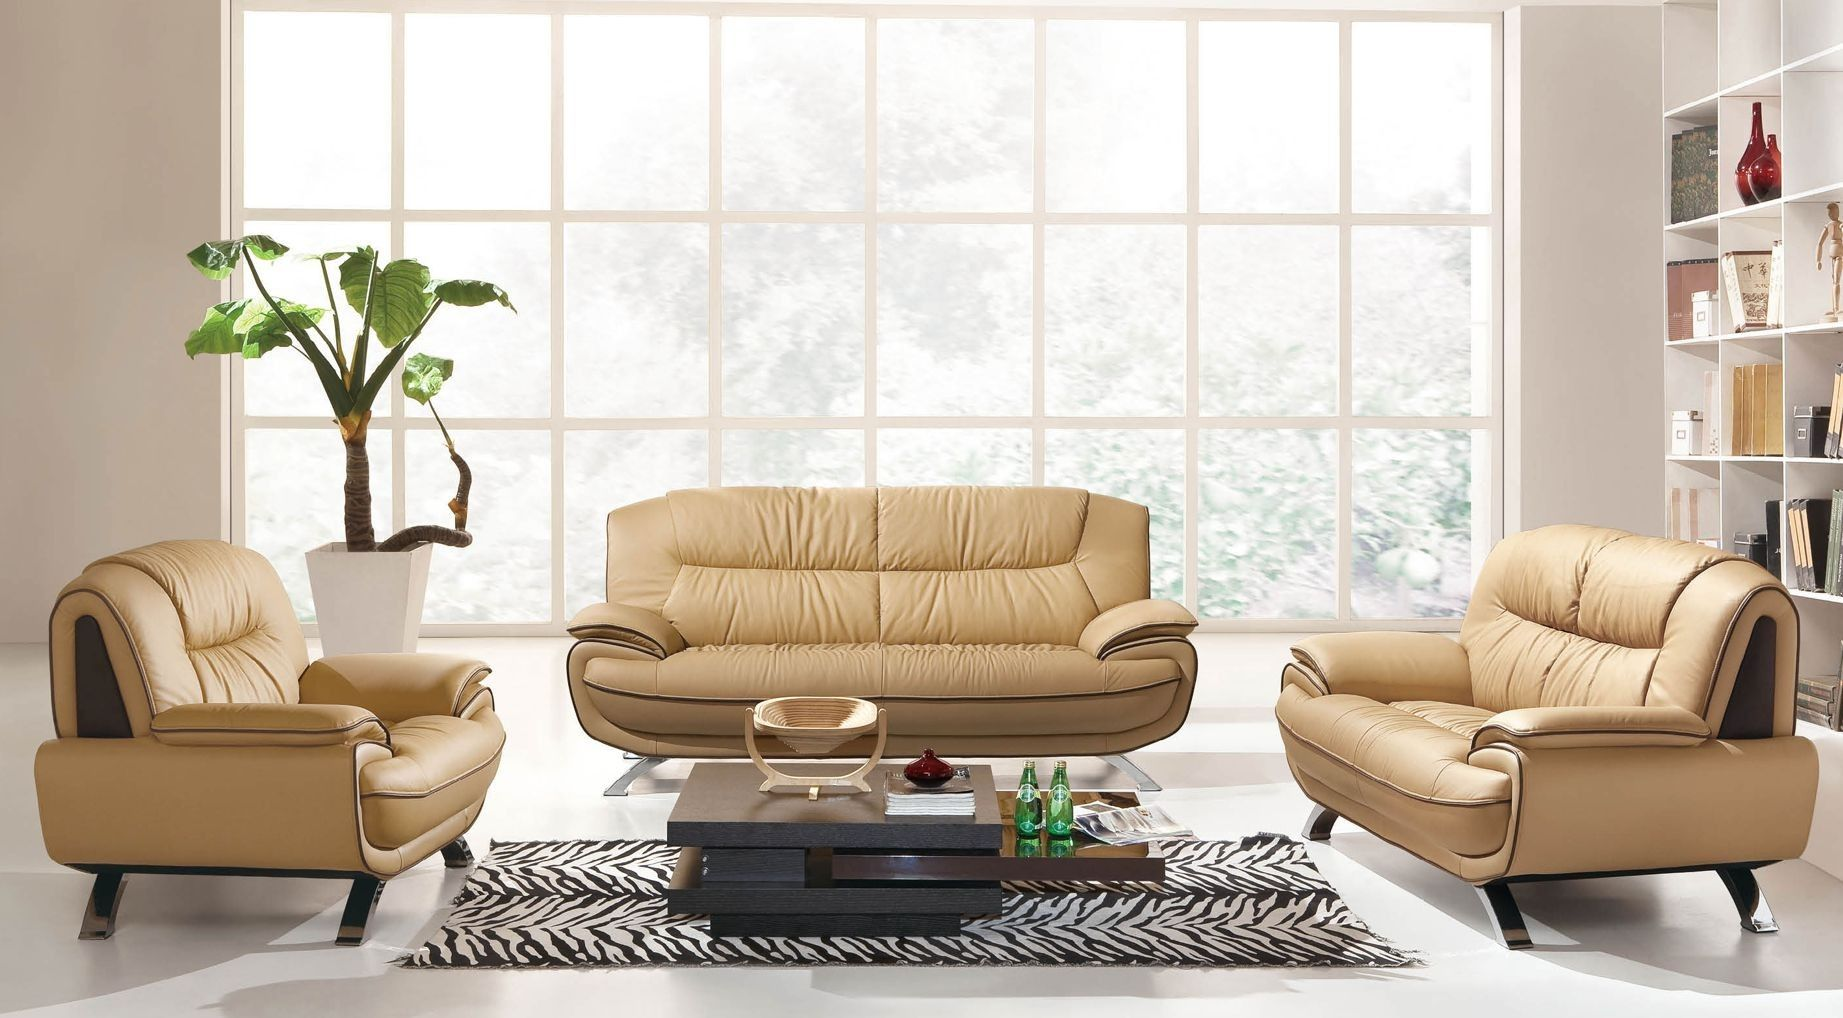 sectionals sets new furniture most with set and living inside couches room sofas released cool popular at recently chairs sofa for